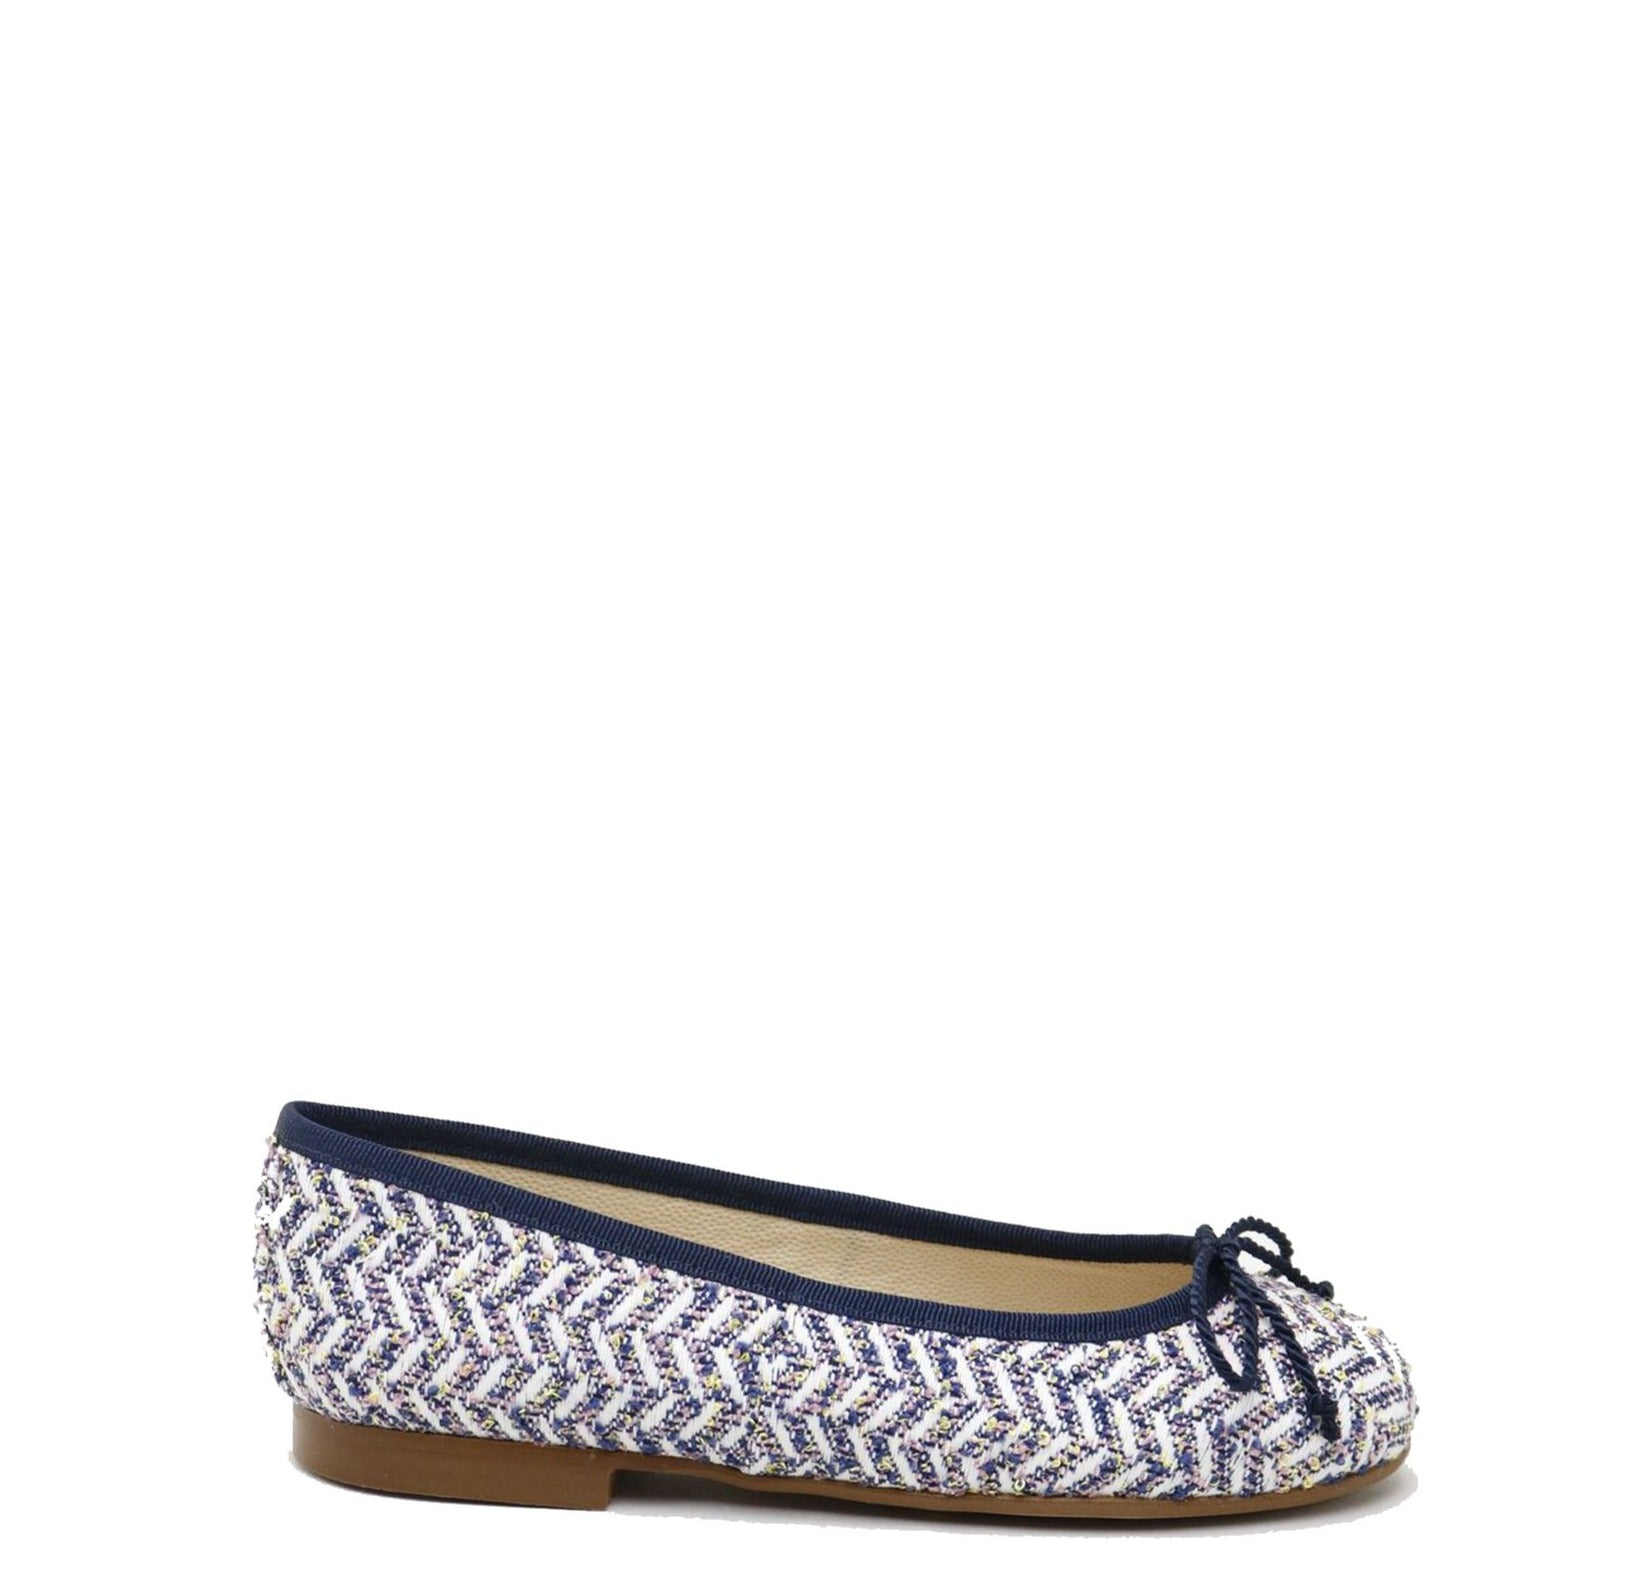 Papanatas Navy and White Tweed Bow Ballet Flat-Tassel Children Shoes